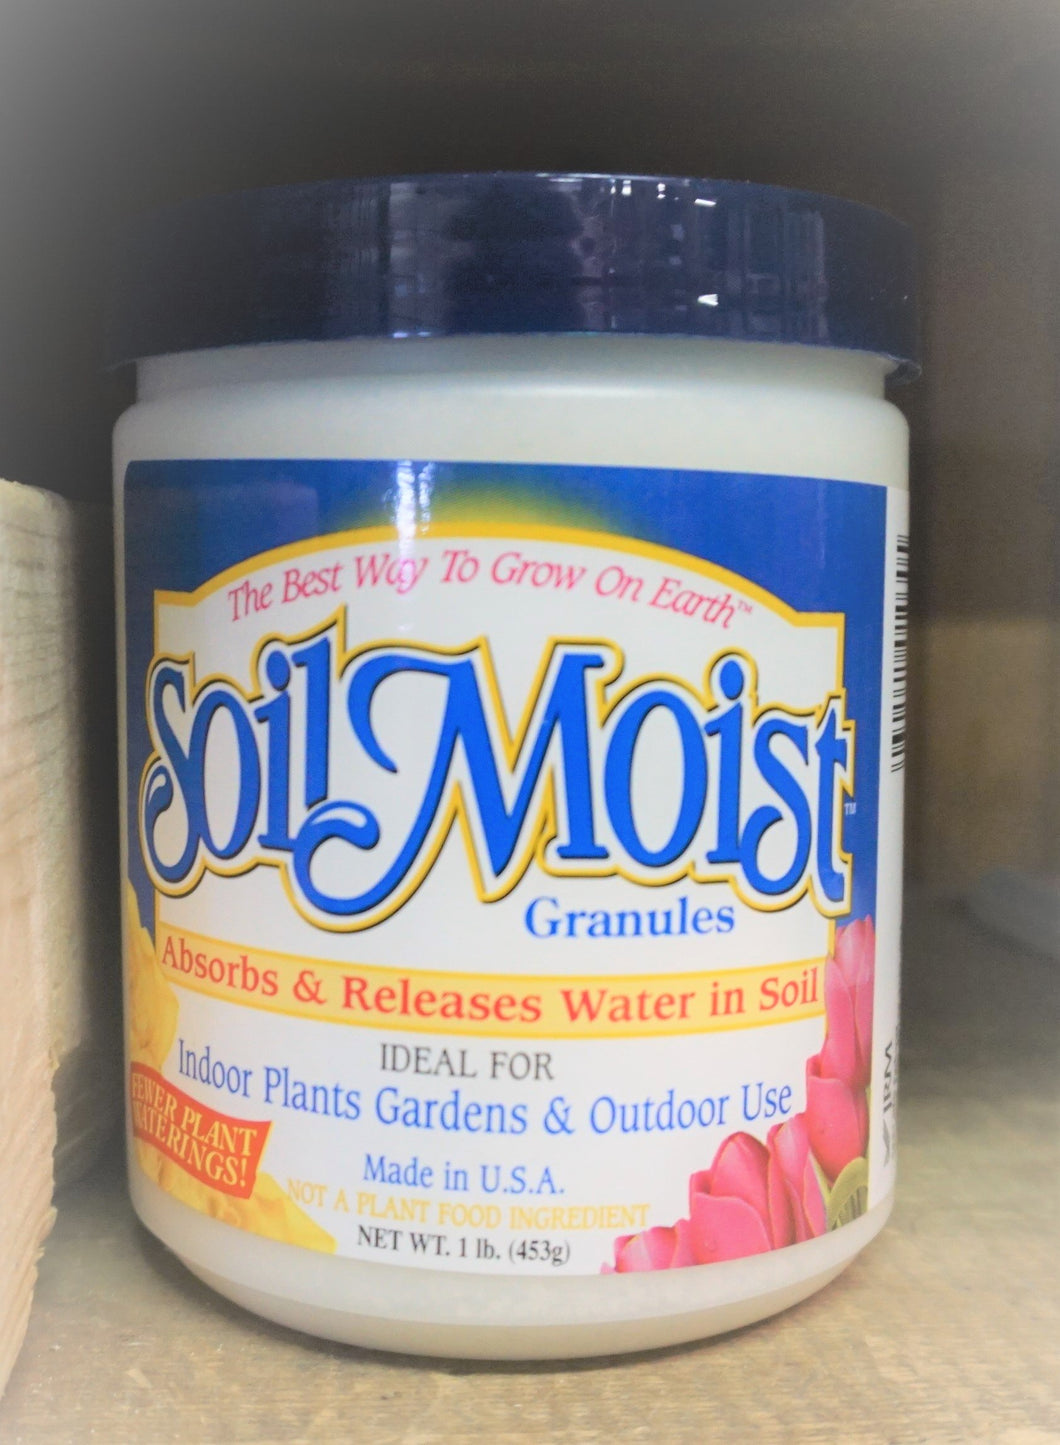 Soil Moist granules. 1 lb Cut your watering in 1/2